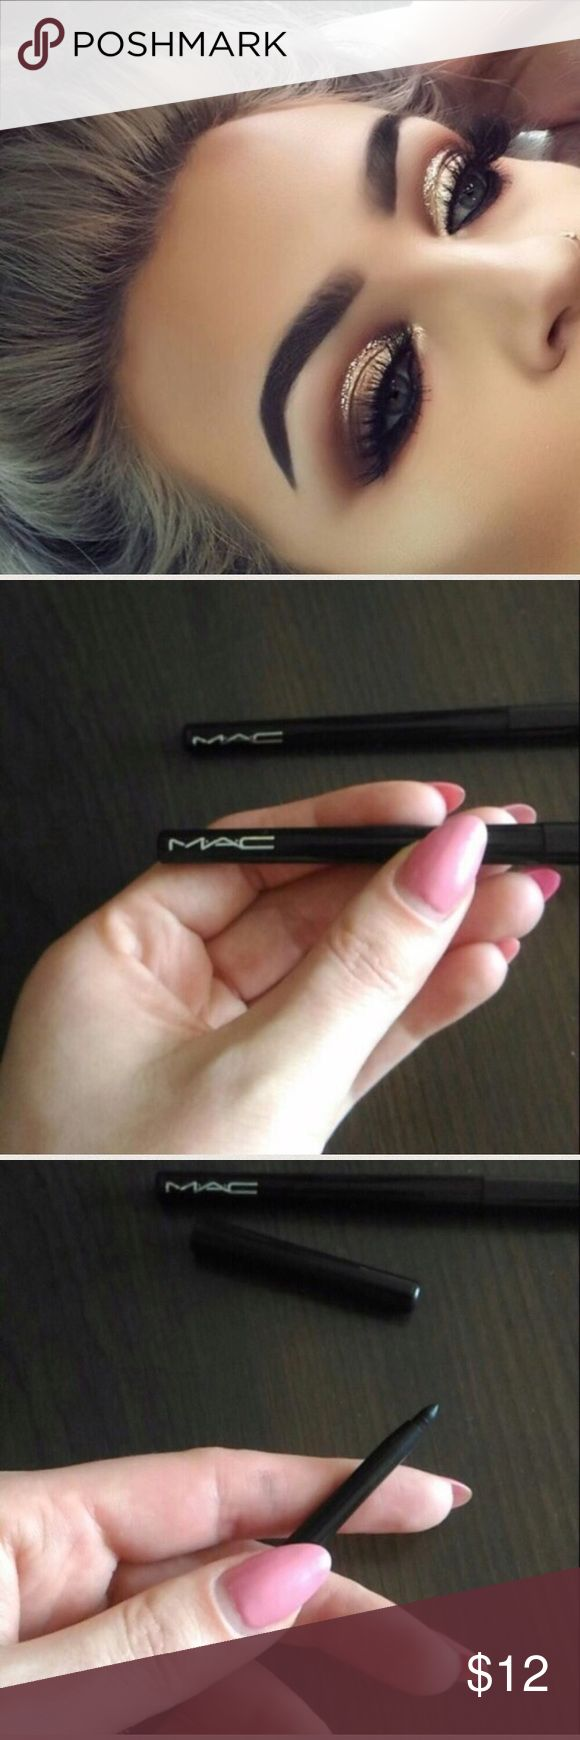 Two MAC Eyeliner 🎀 Brand New Two MAC Eyeliner 🎀  •Brand new •Never used  •Transfer-resistant •Long wearing, 8 hours •Smudge resistant • Applies soft and creamy •Color-Black Tart Makeup Brushes & Tools